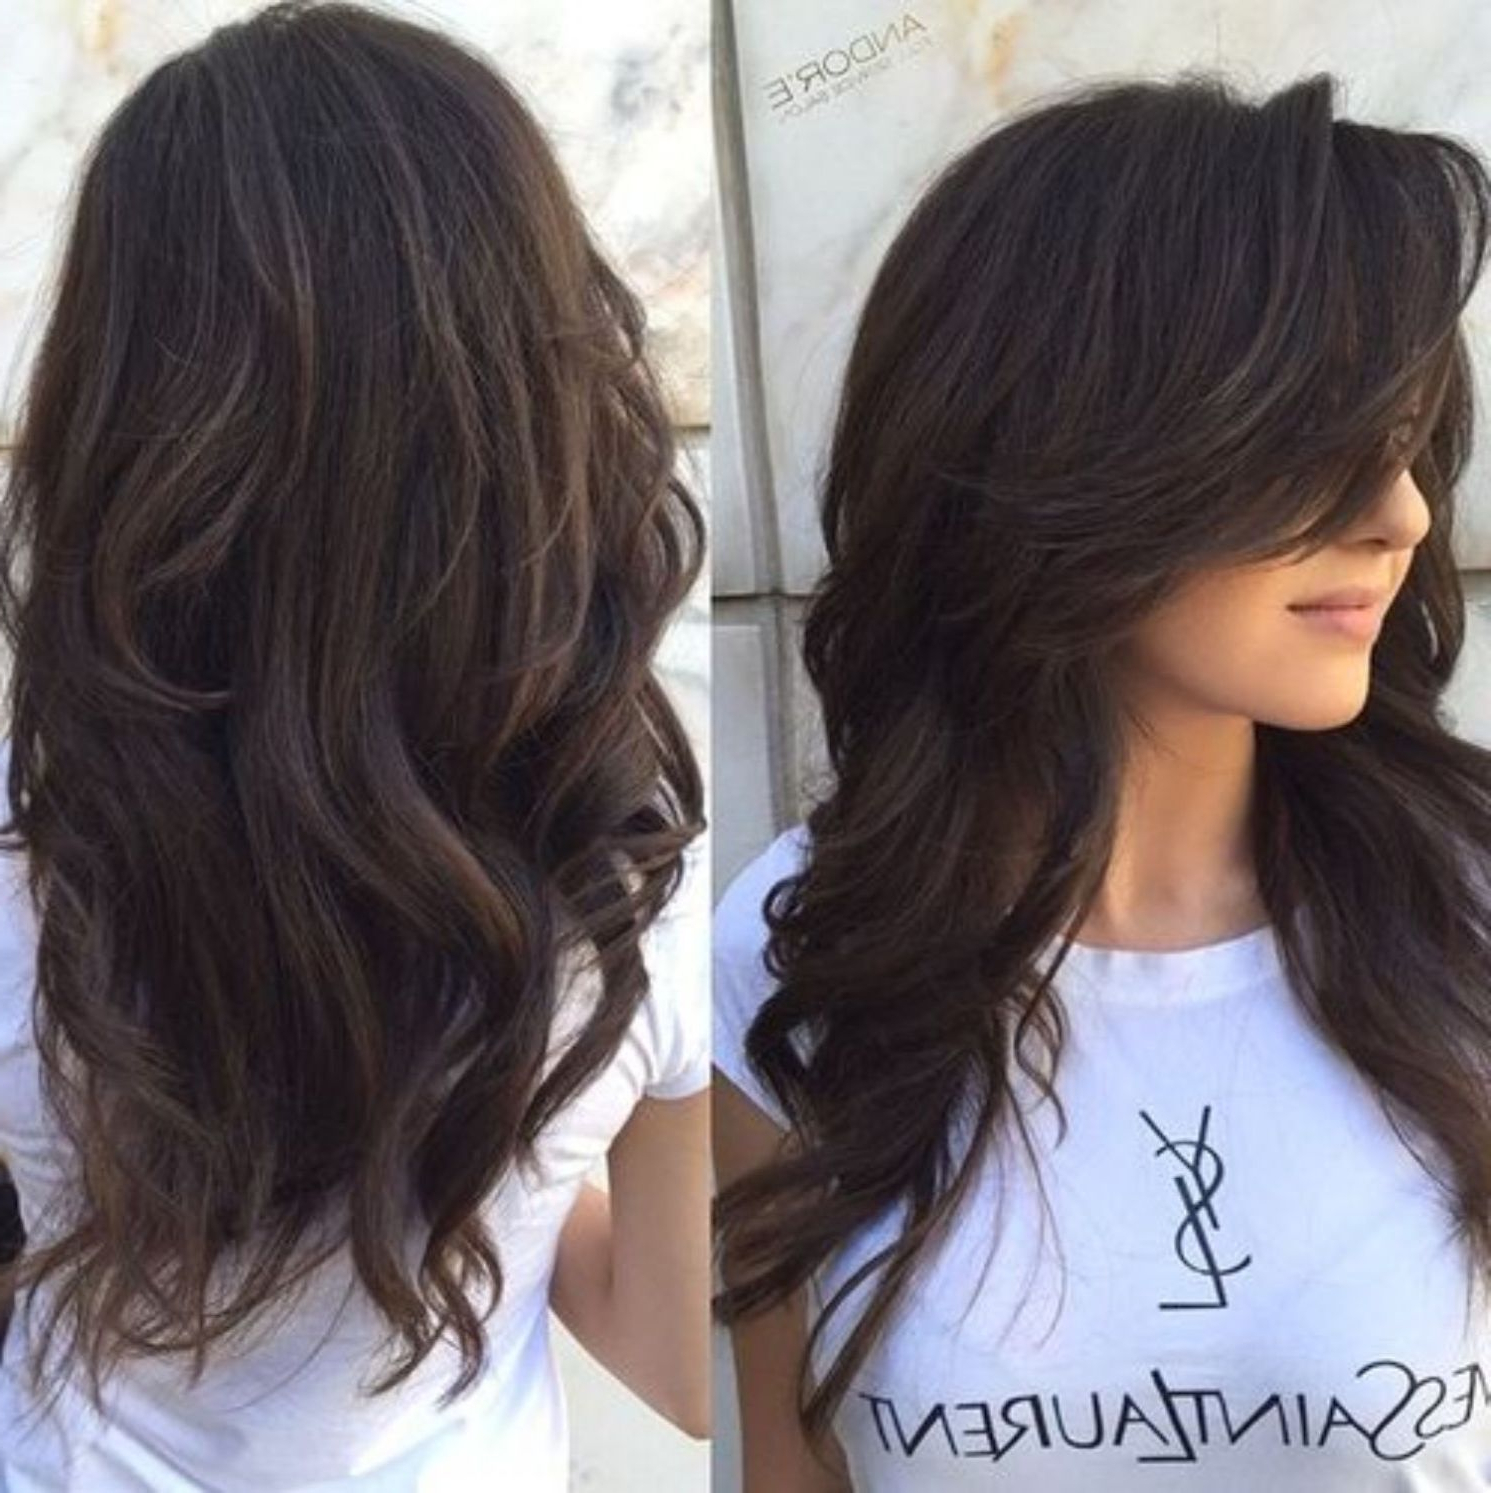 Famous Messy Loose Curls Long Hairstyles With Voluminous Bangs Intended For 80 Cute Layered Hairstyles And Cuts For Long Hair In (View 2 of 20)